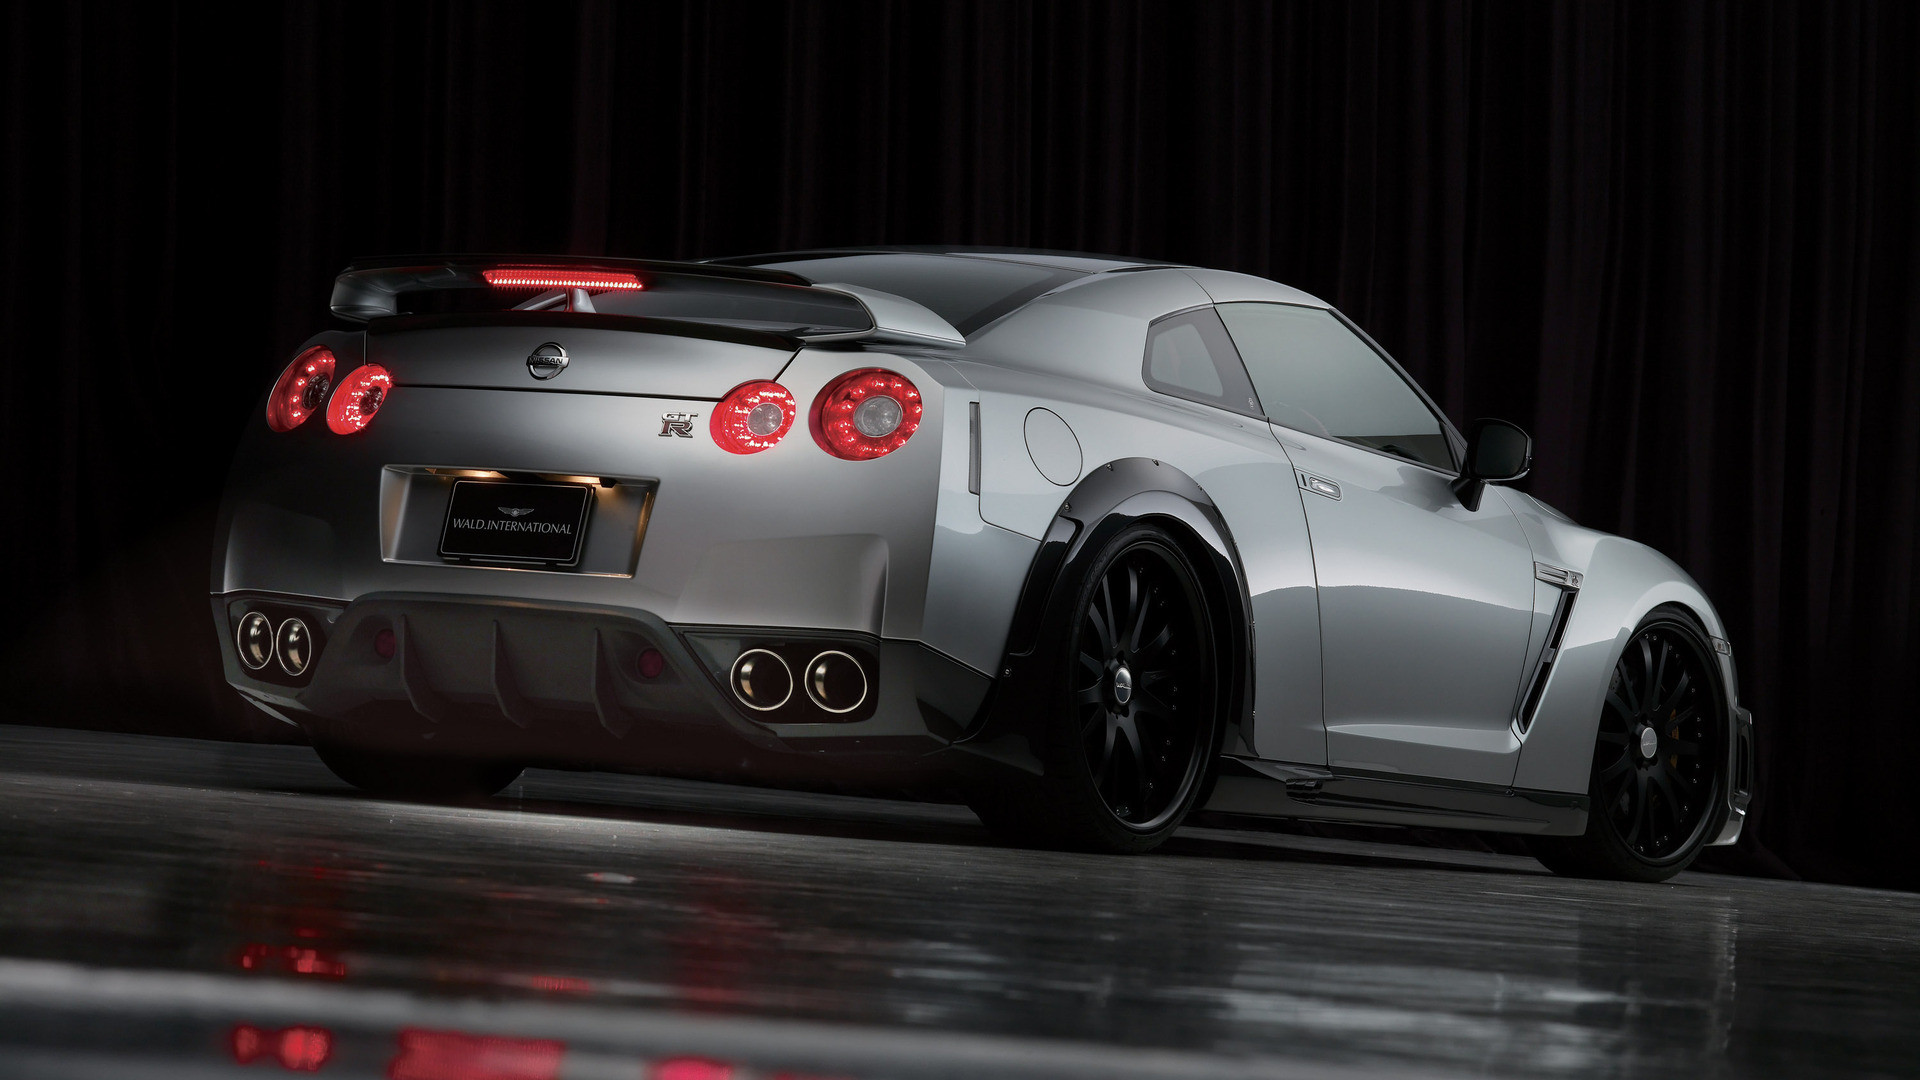 Awesome Nissan Car Pixels Full HD Wallpaper Pack – Tech Bug .